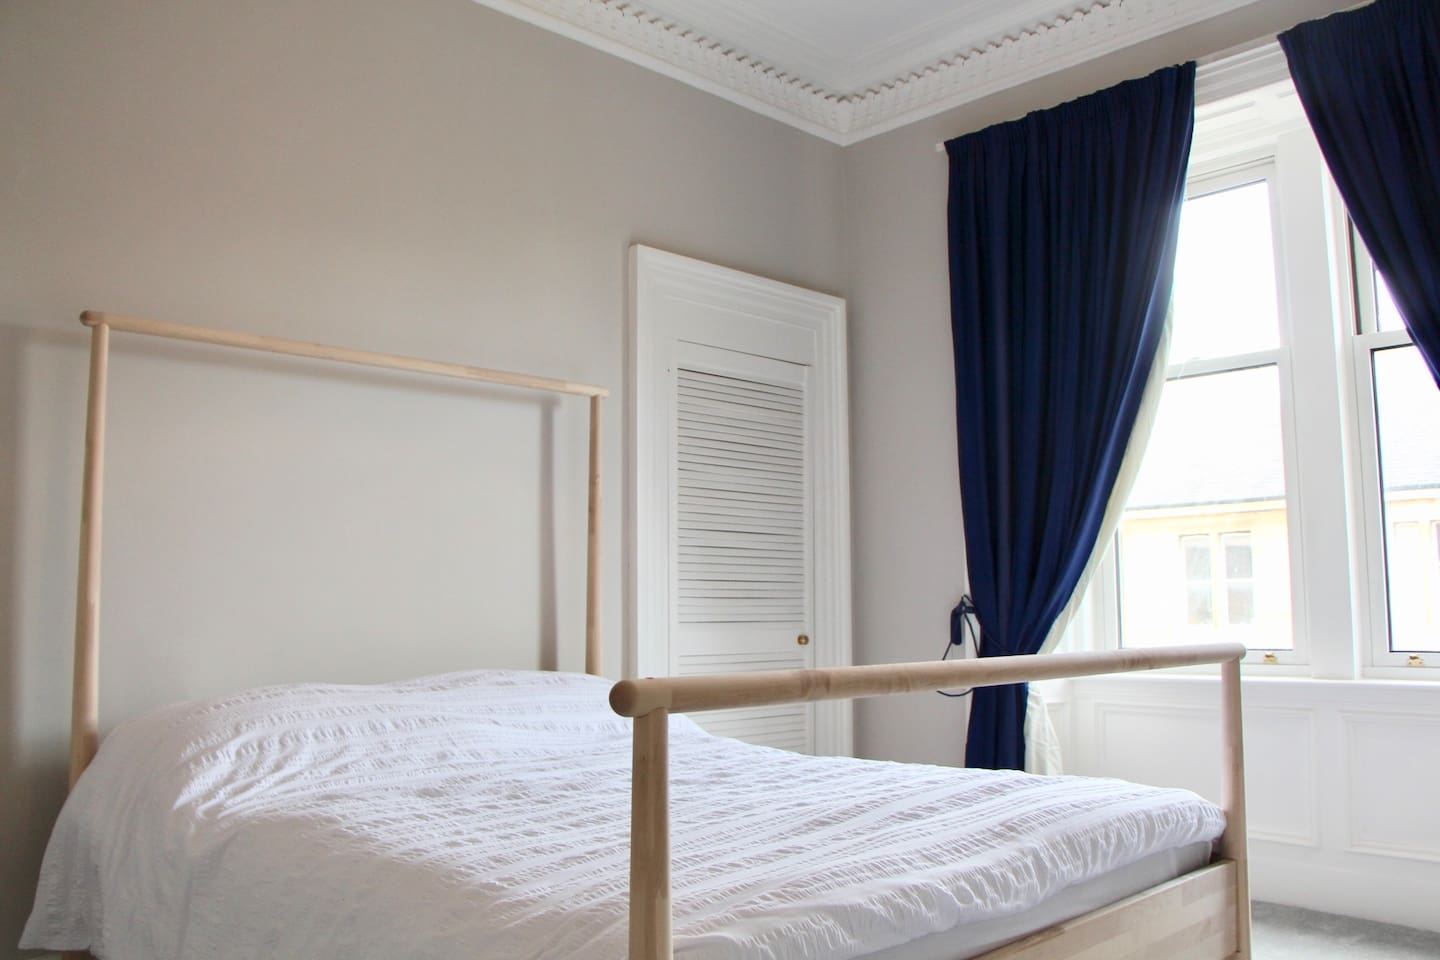 Newly Refurbished 2Bed Flat/Stockbridge (Sleeps 4)